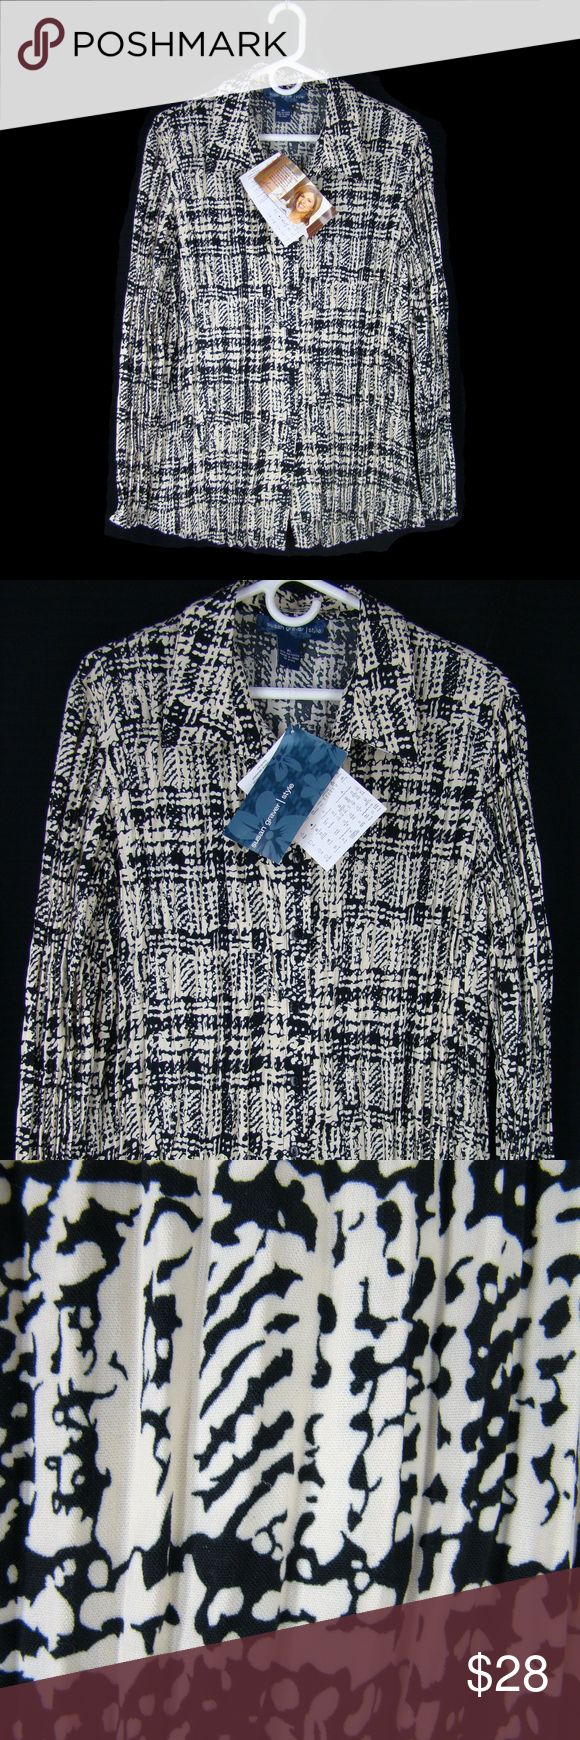 """New  Susan Graver Broomstick Houndstooth Shirt XL Susan Graver blouse in a black and white modern houndstooth print with a broomstick treatment that allows it to flow comfortably over curves Relaxed fit, point collar, buttoned front, long sleeves. Machine wash, twist dry. New with tags.  Care - Machine wash, twist dry.      Shoulder - 18.5""""     Bust - 48 stretches to about 54""""     Hem - 56""""     Length - 28.5"""" (base of collar band down back)     Sleeve - 25"""" Susan Graver Tops"""